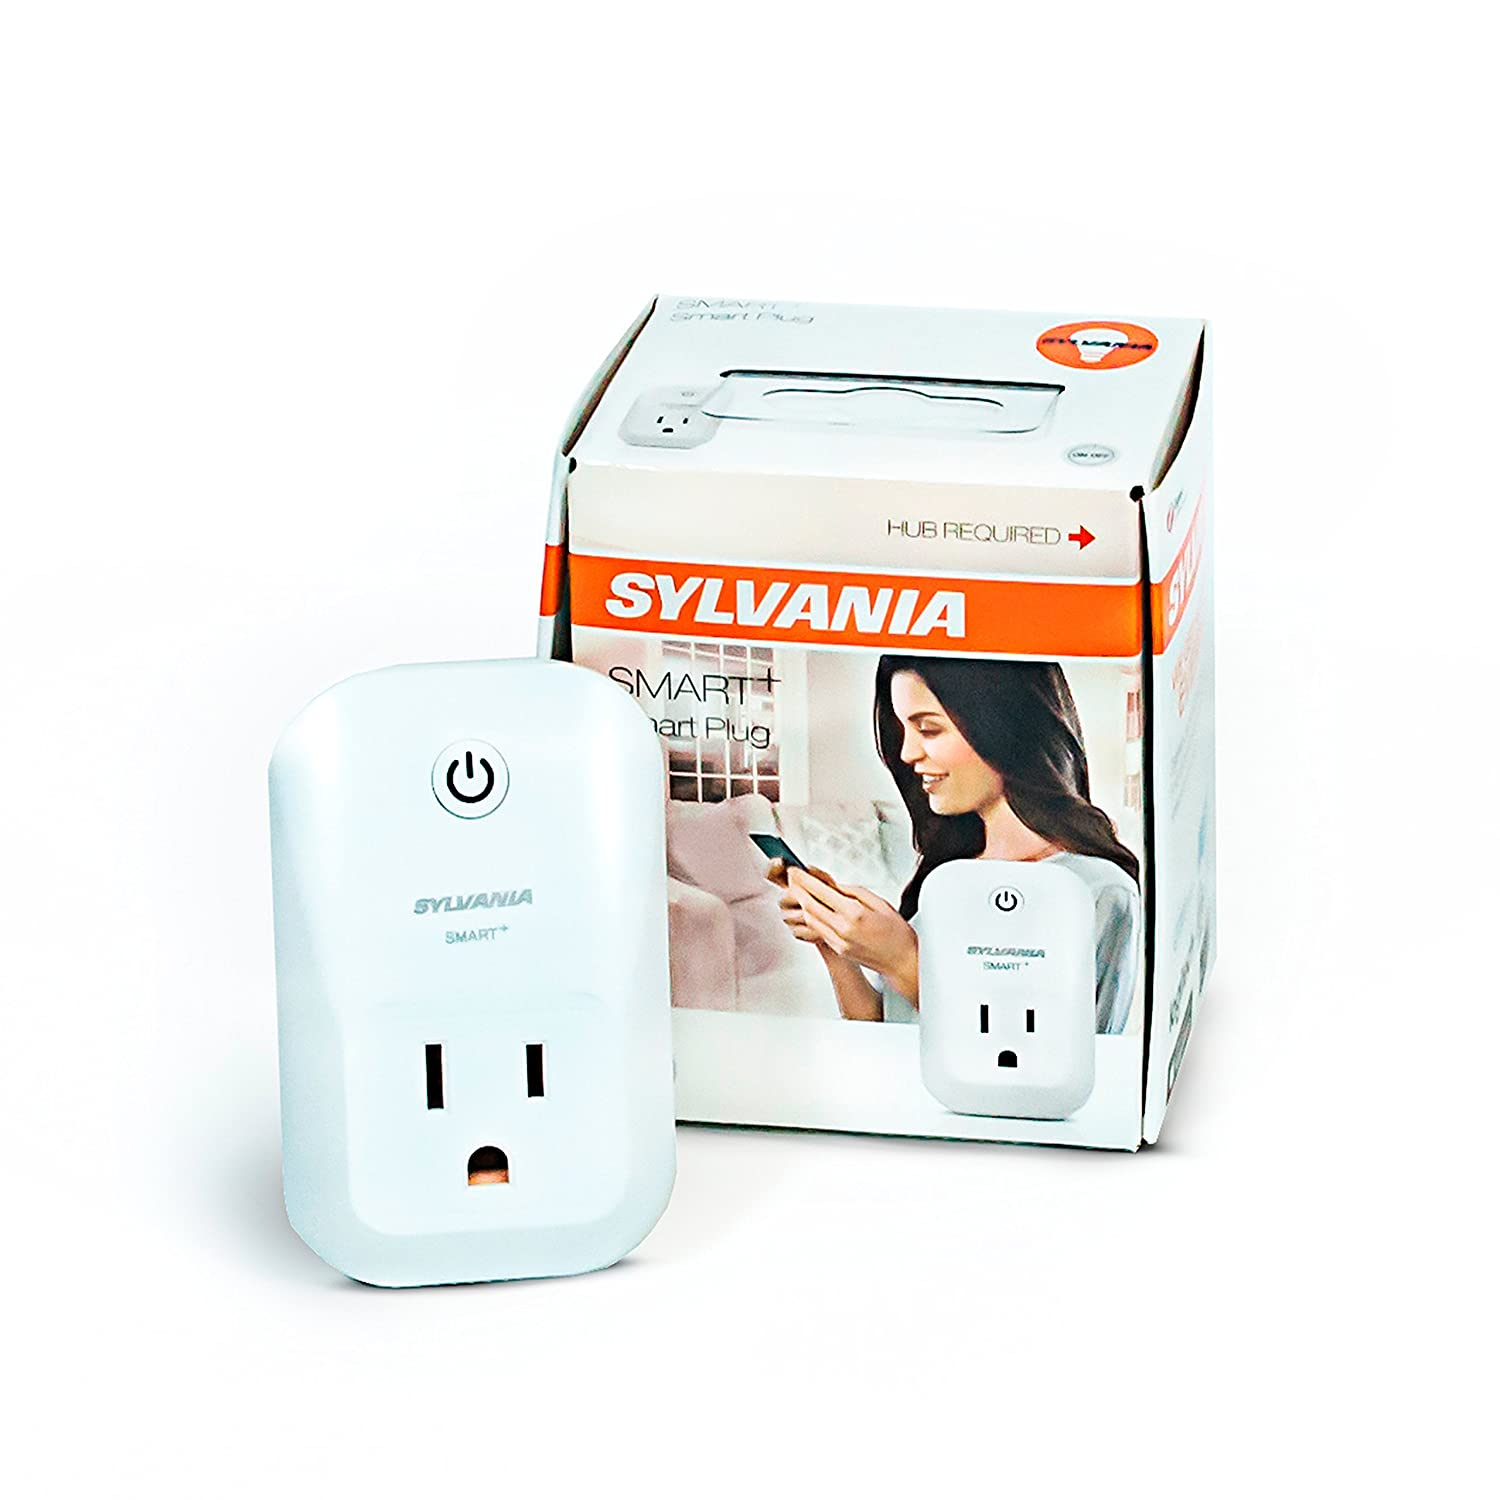 Sylvania Smart Home 72922 Sylvania LIGHTIFY Smart Plug, 1 Pack, White